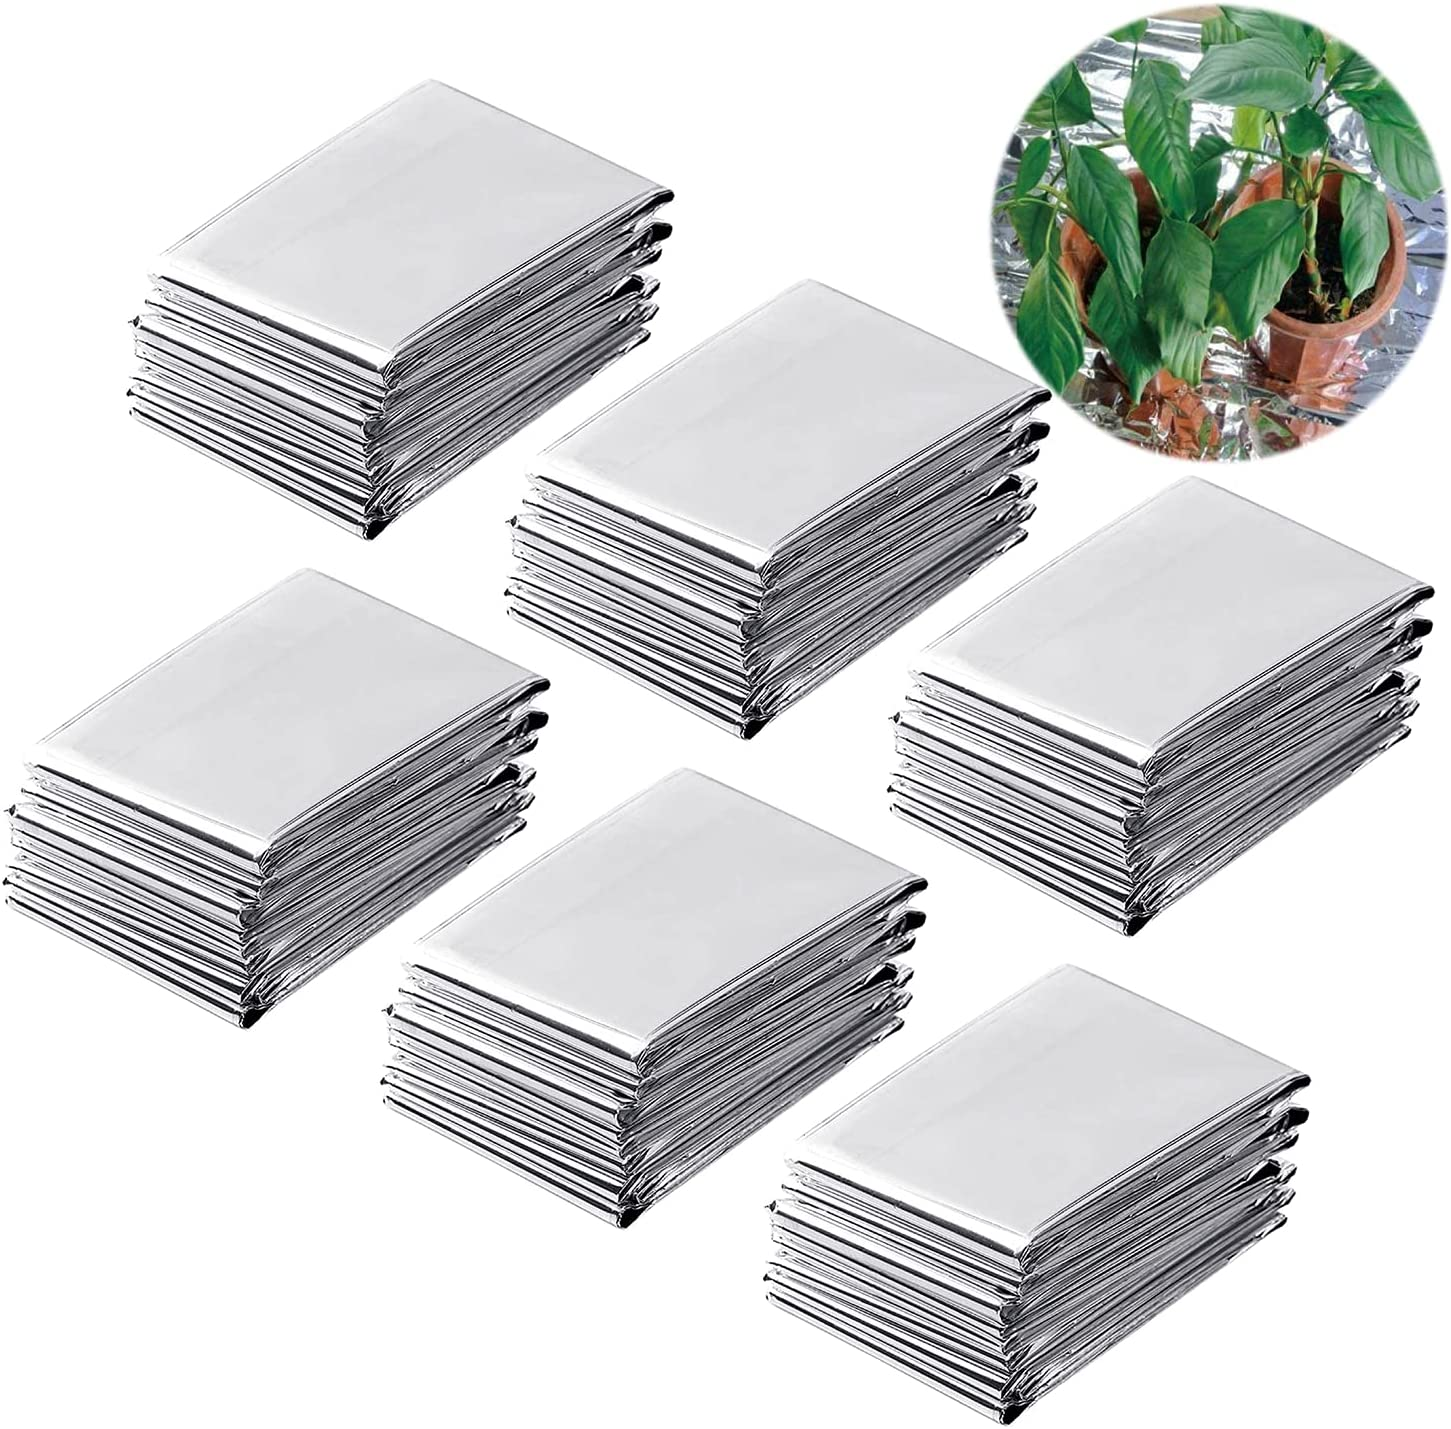 Plant Reflective Film Gardening Supplies for Greenhouse Garden Gardening Accessories Safe and Eco-Friendly PETP Film Silver Garden Plant Reflective Film